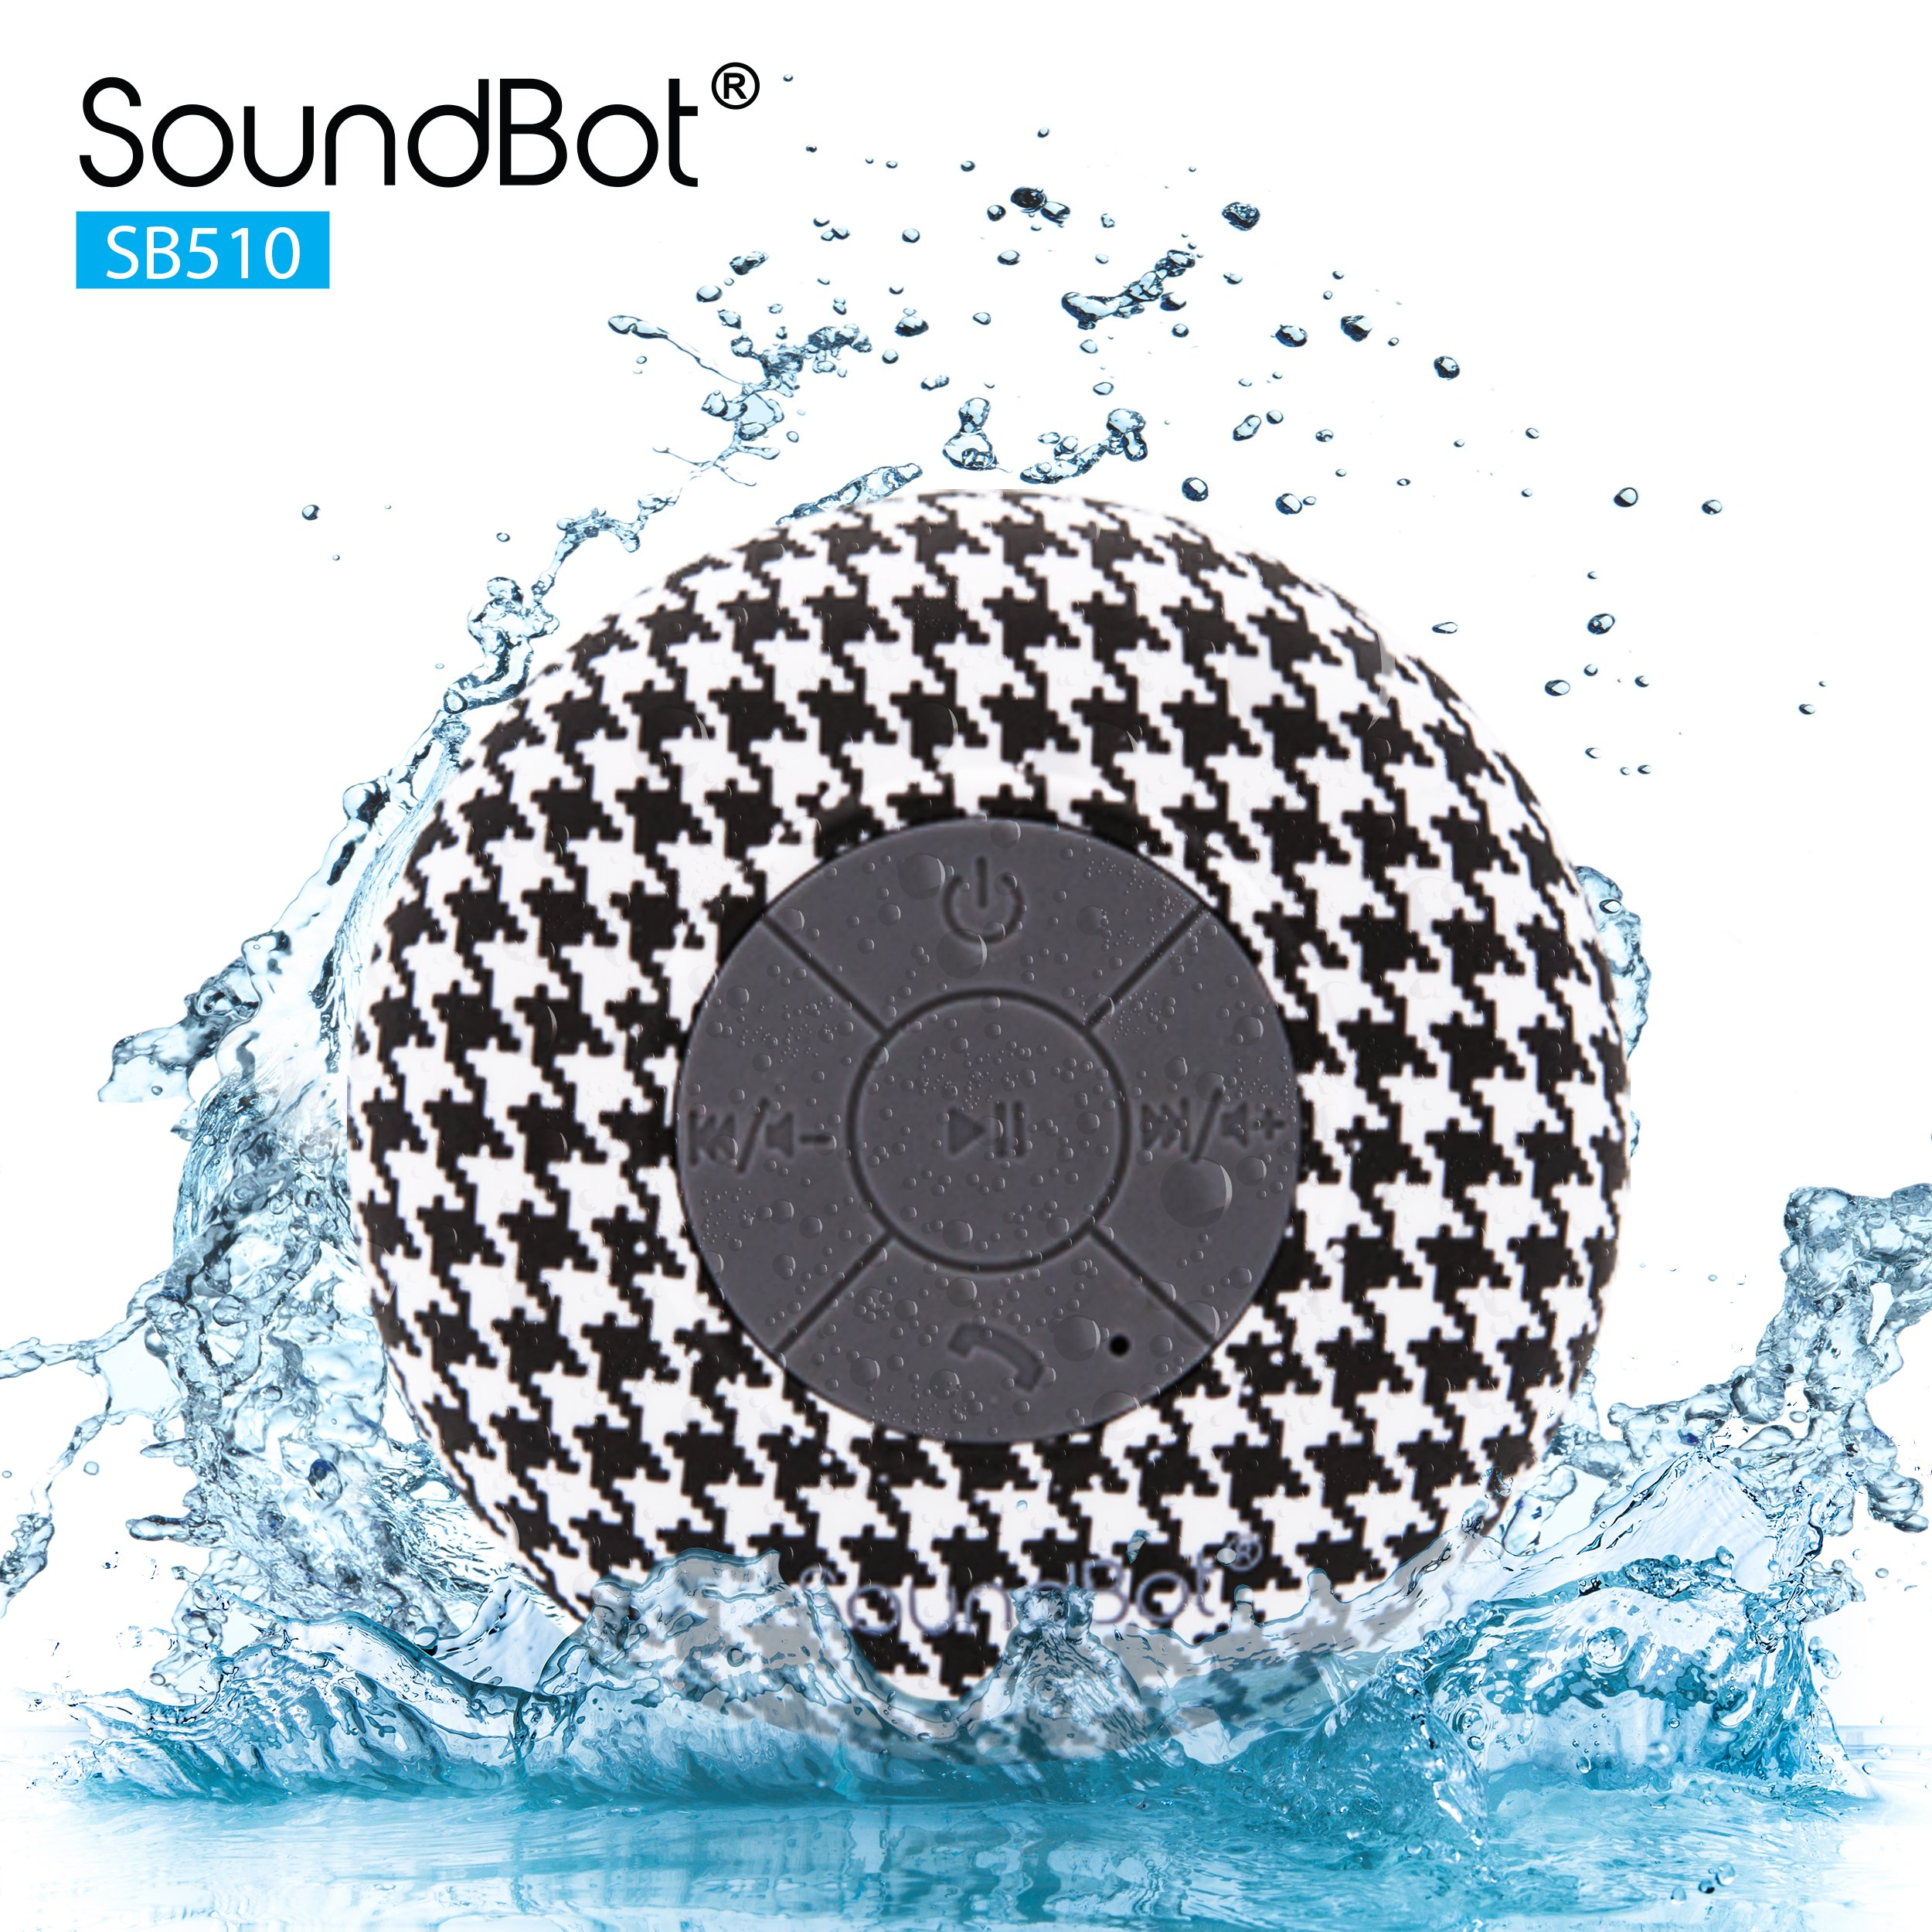 SoundBot® SB510 HD Water Resistant Bluetooth Wireless Shower Speaker, Hands-Free Portable Speakerphone w/ 6Hrs of Playtime, Built-in Mic, Control Buttons & Detachable Suction Cup for Indoor & Outdoor